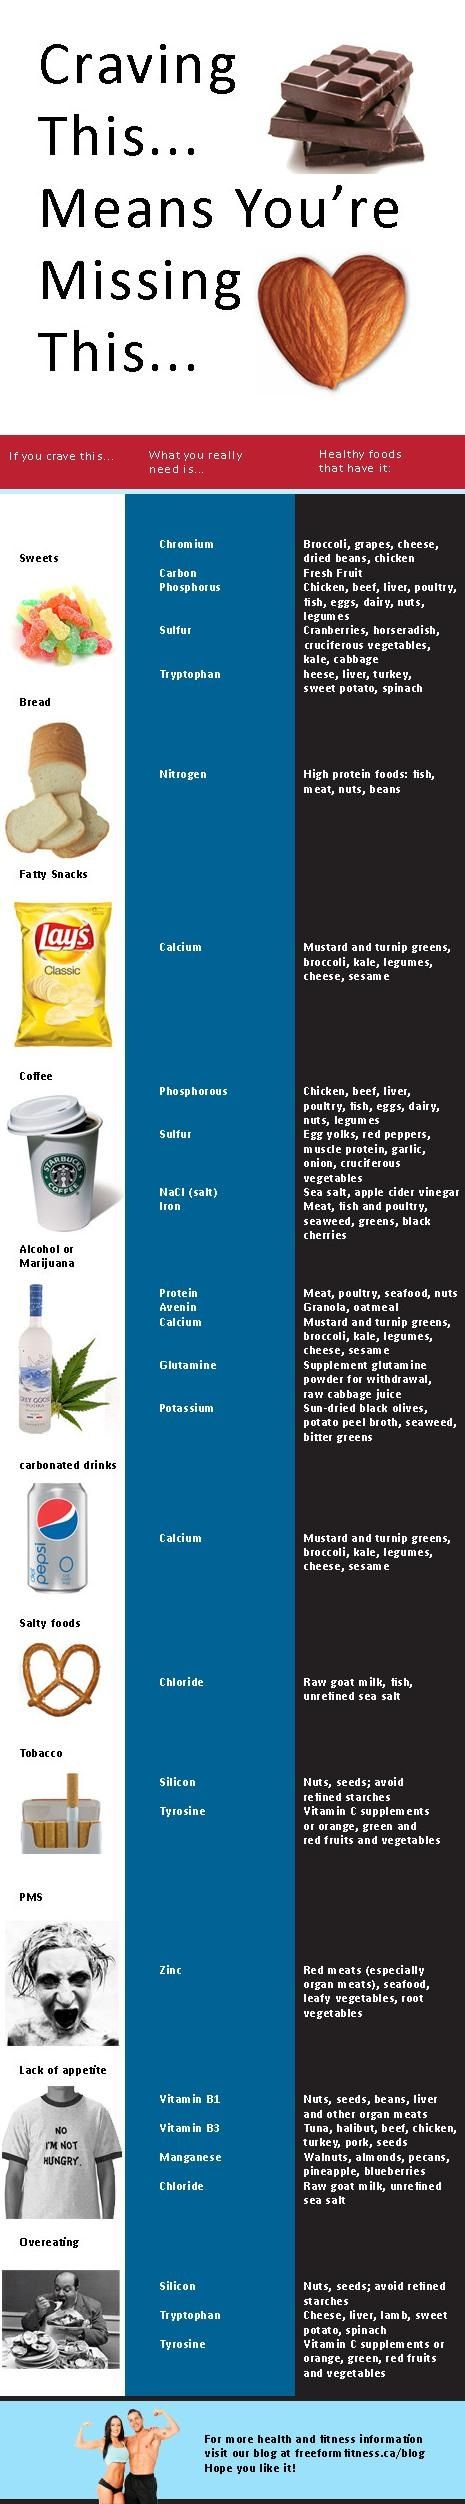 Healthy alternatives to different kinds of cravings, very interesting!